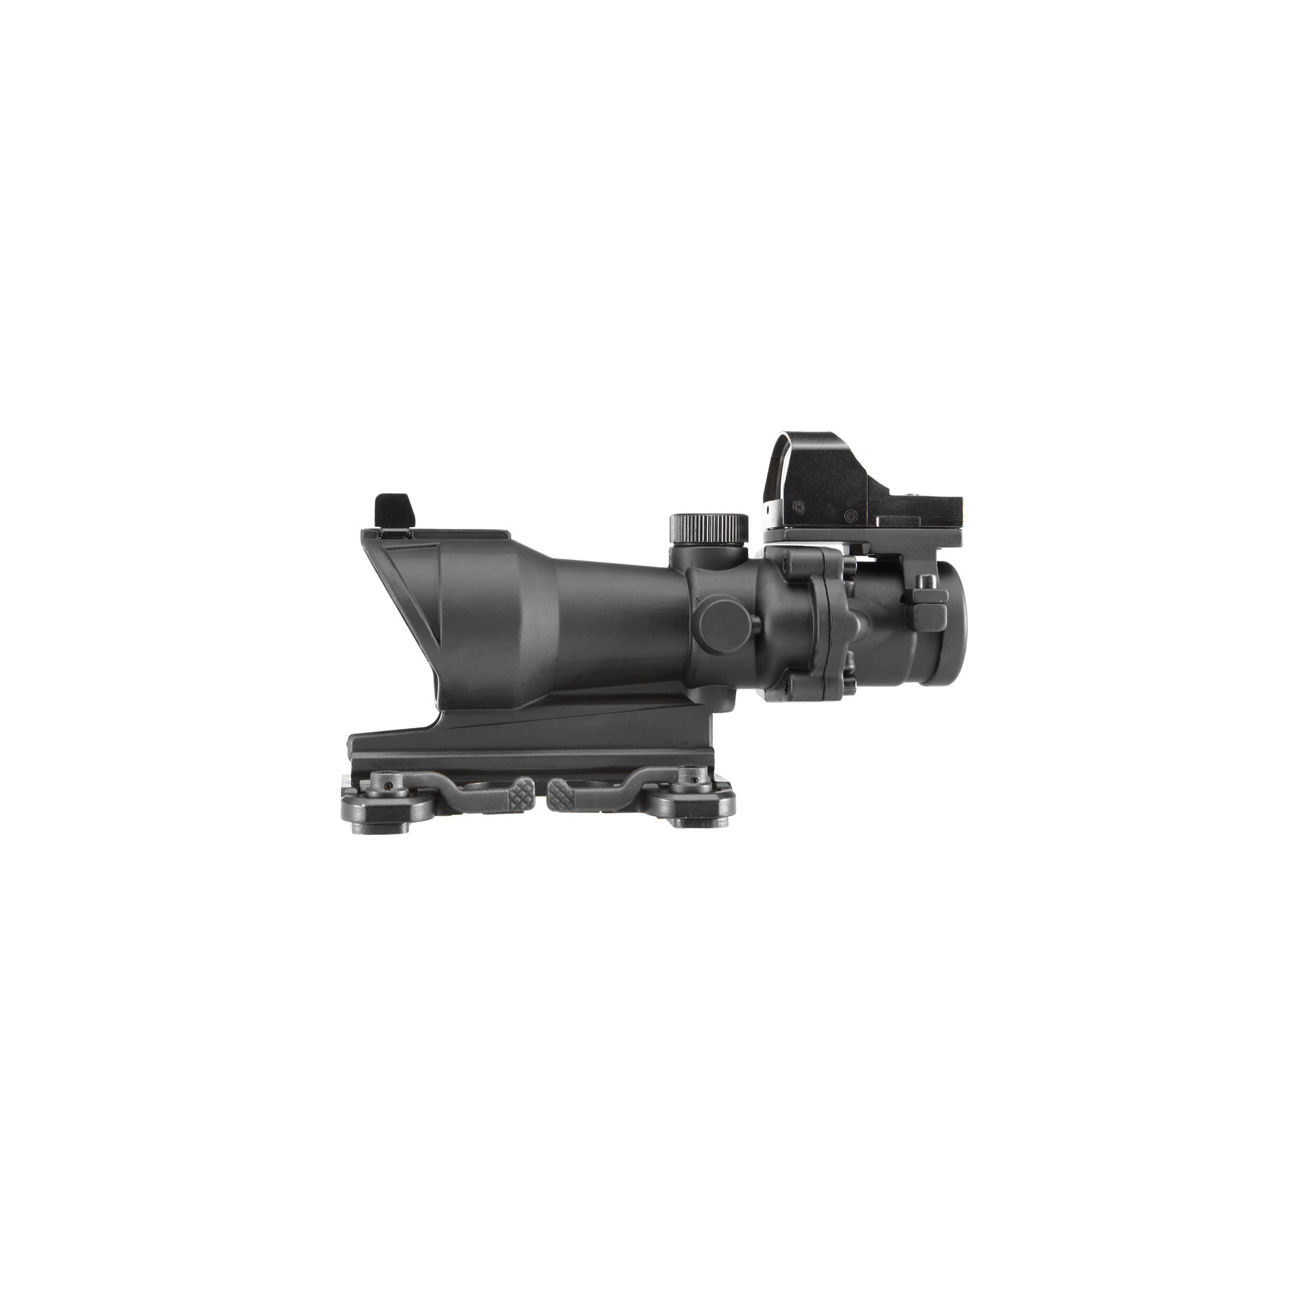 Aim-O TA01 Style Scope 4x32 QD-Mount mit Mini RedDot Visier schwarz 5316-BK 1